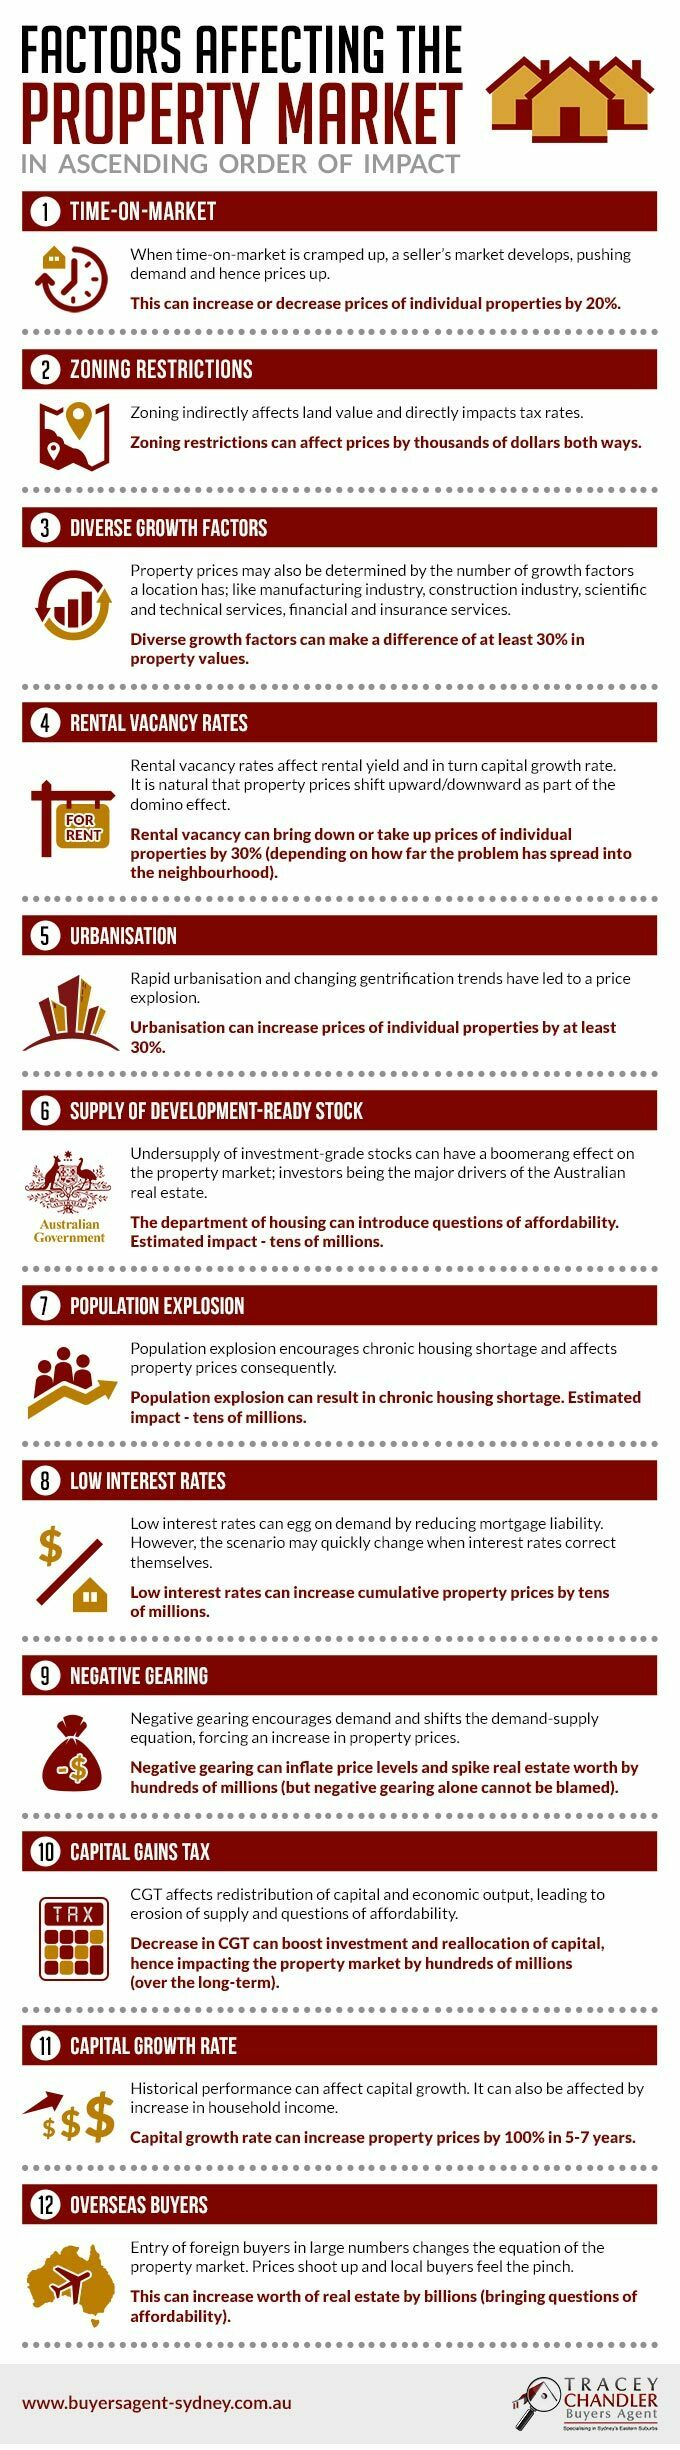 Factors Affecting The Property Market